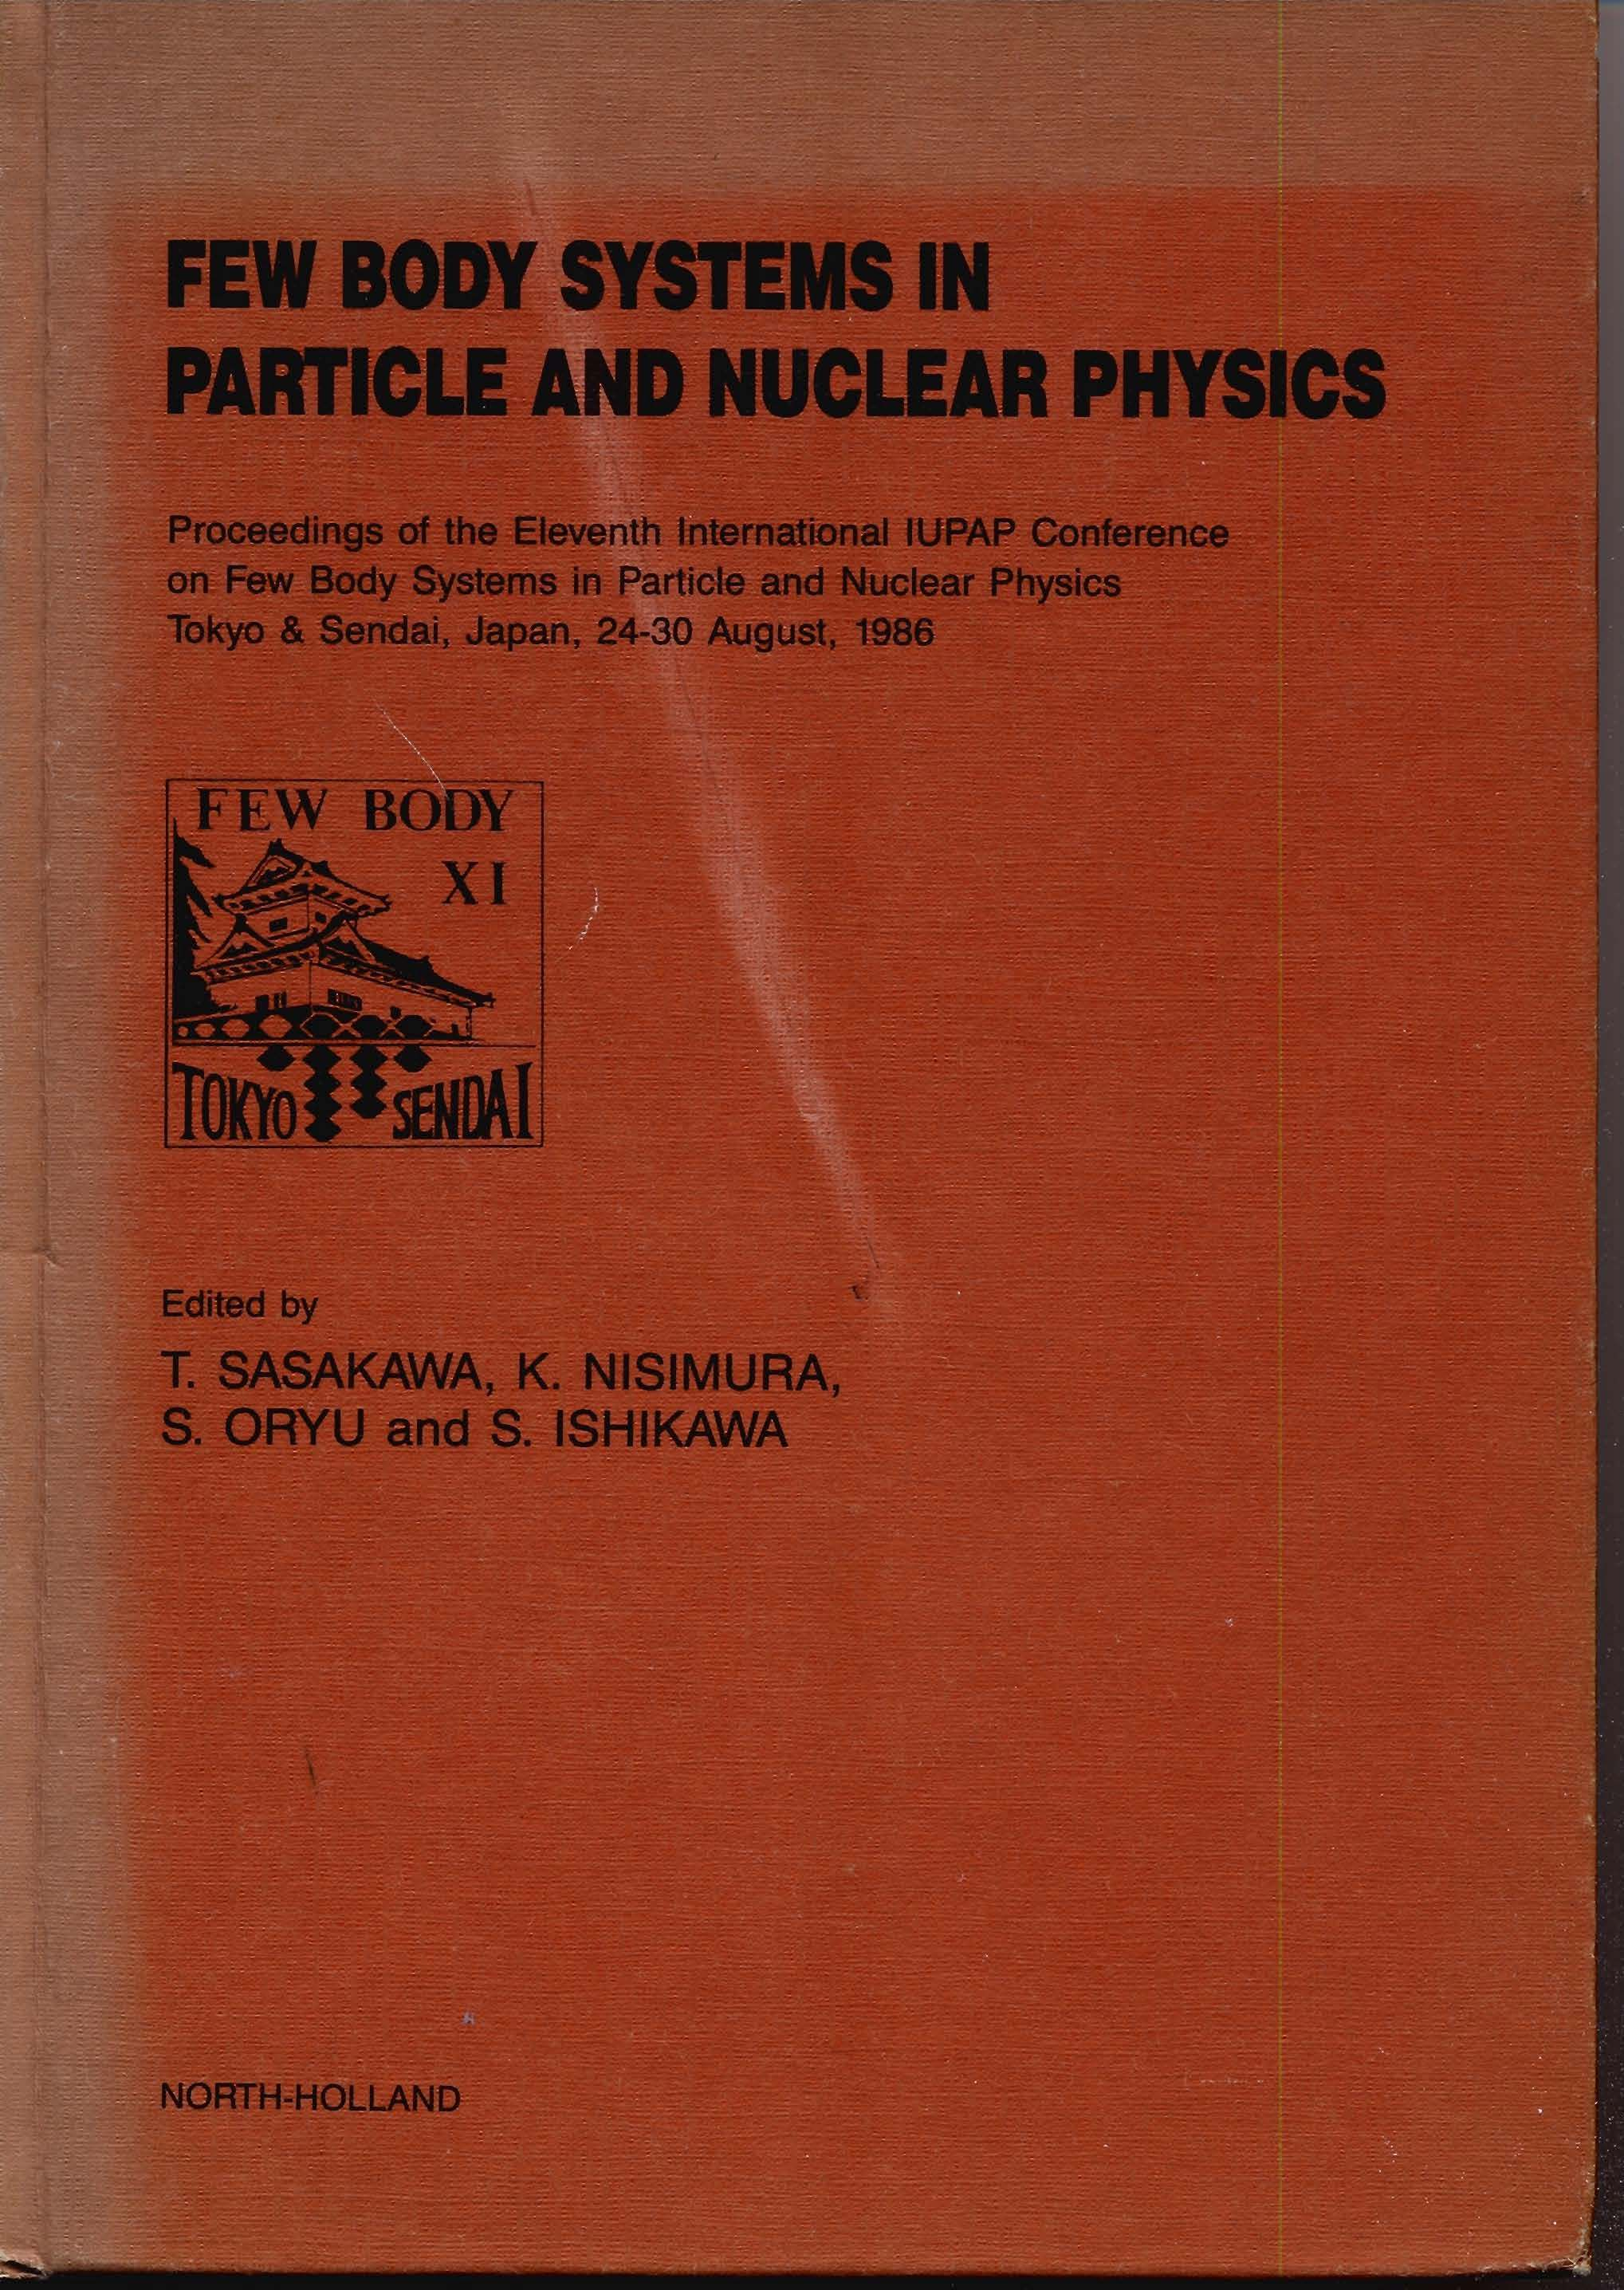 Few Body Systems in Particle and Nuclear Physics